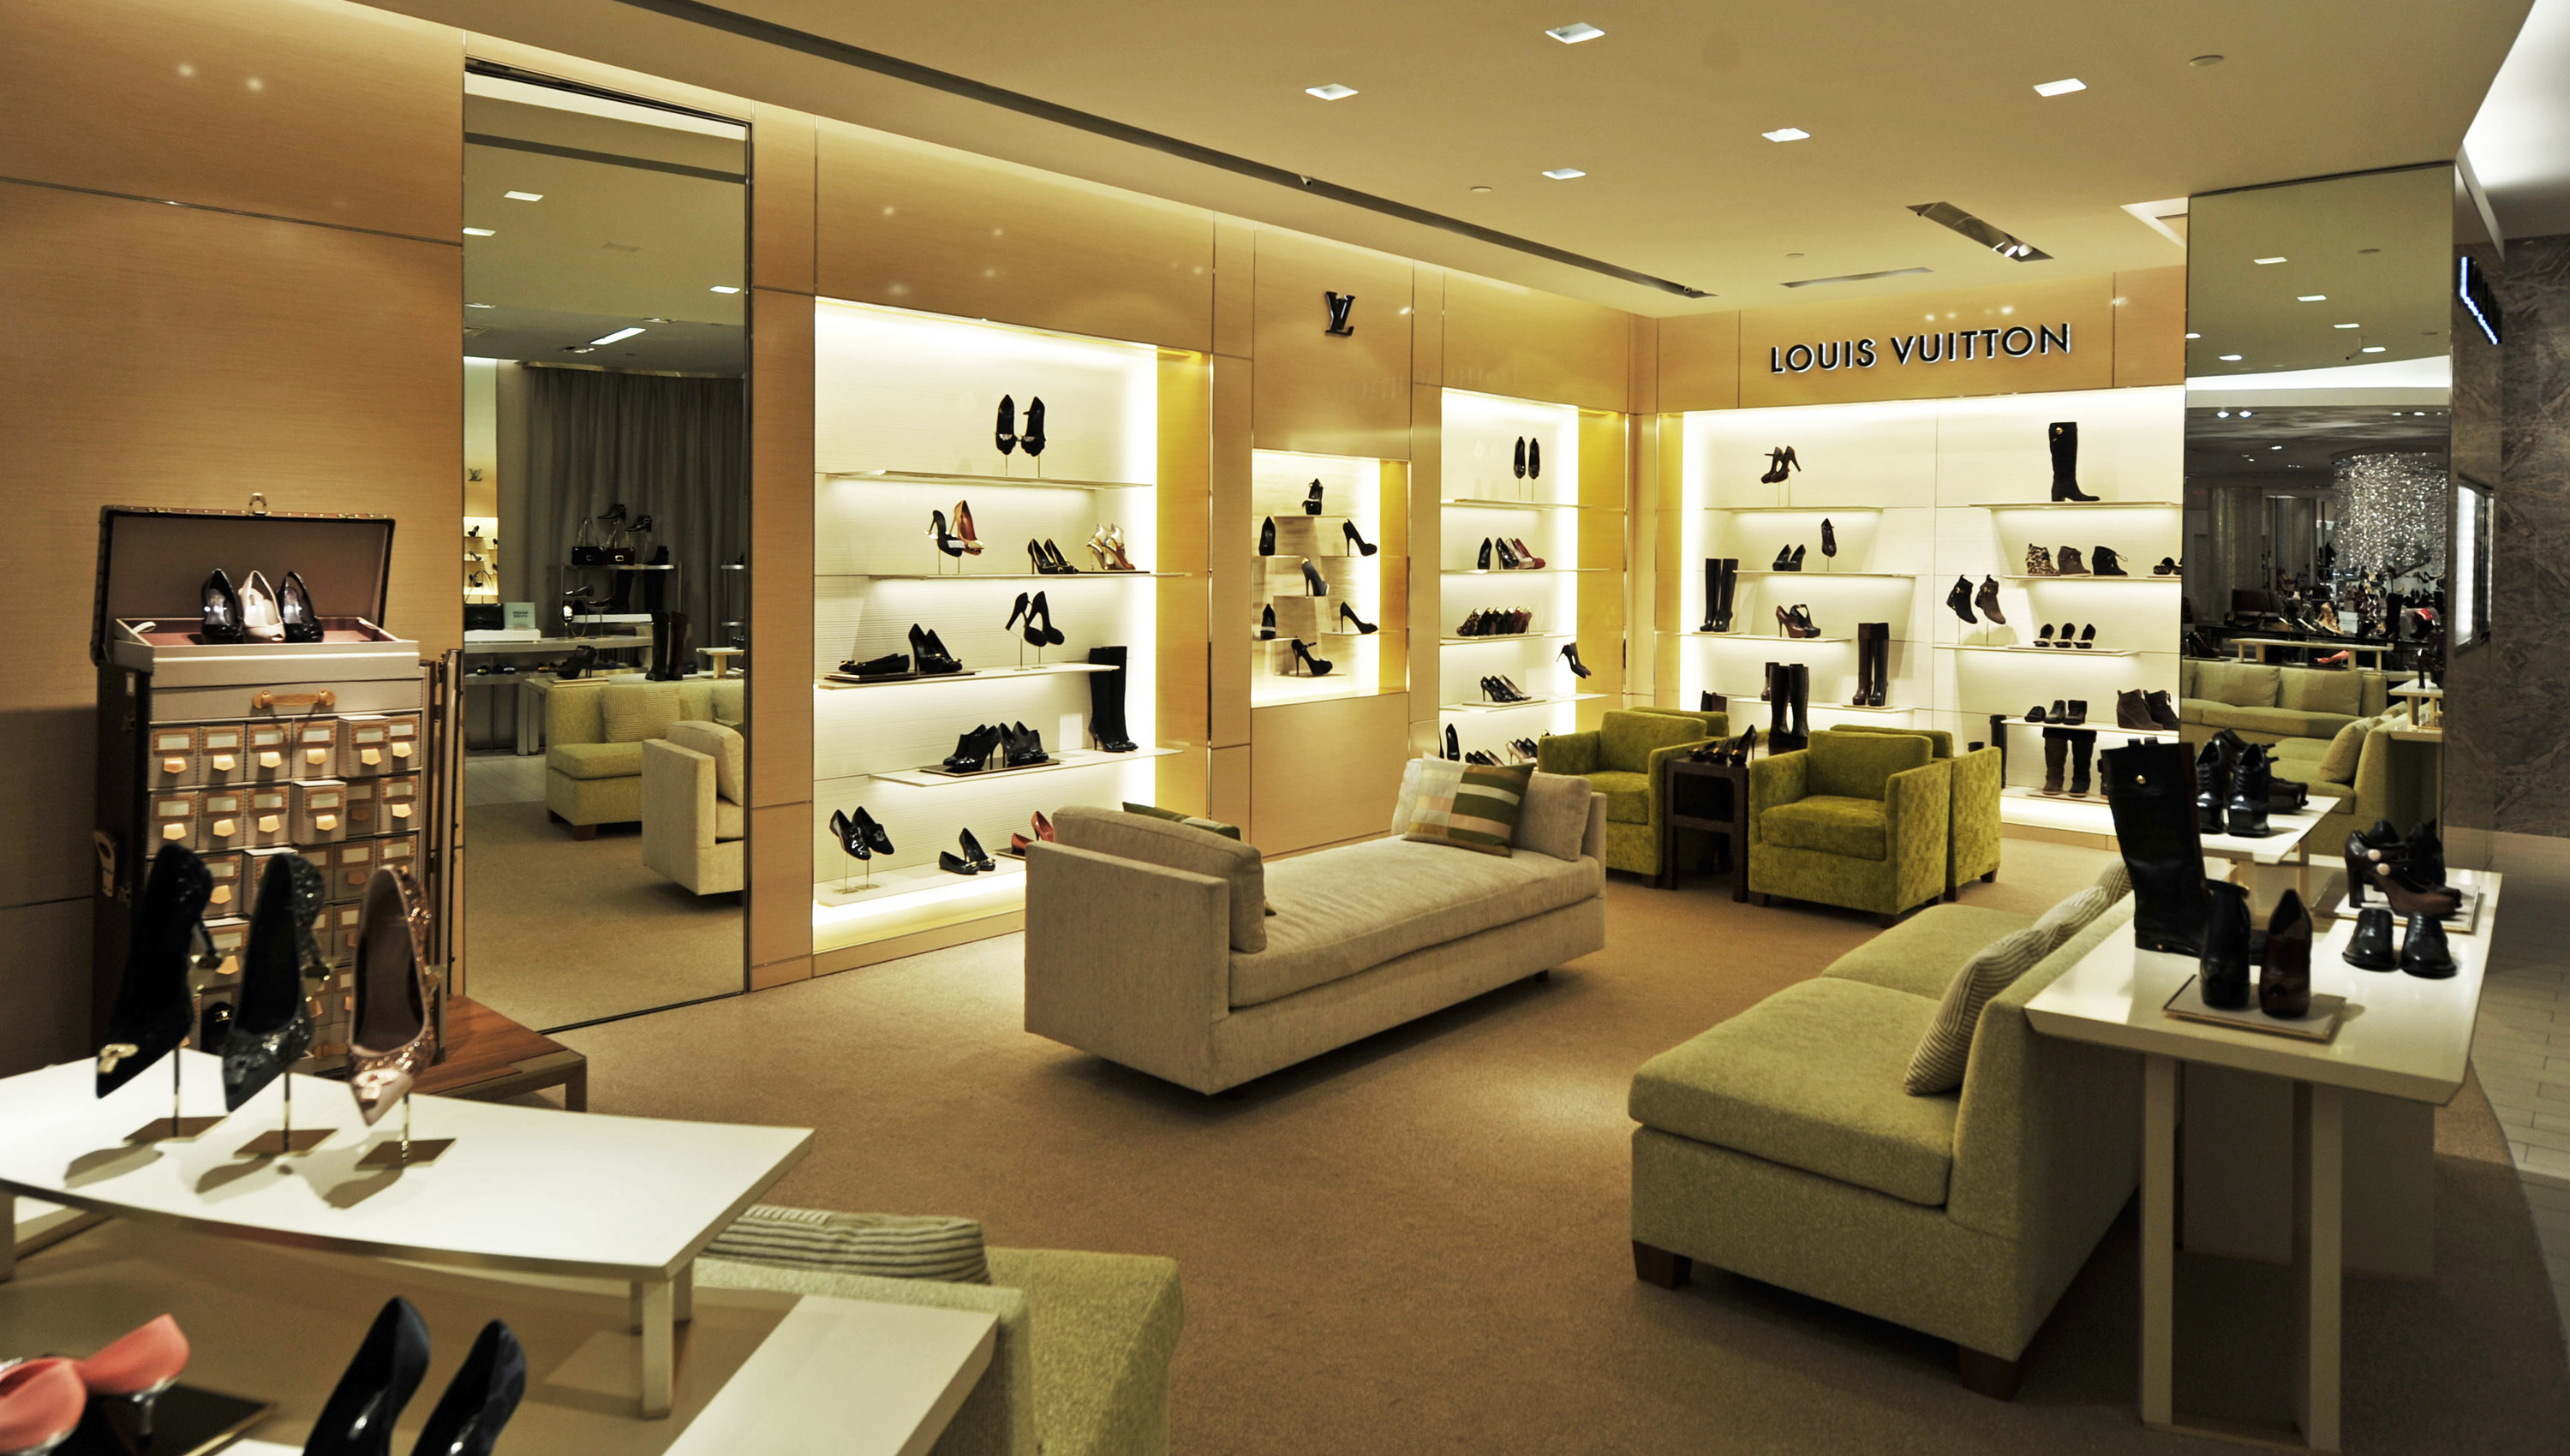 Louis vuitton new york saks 5th ave shoe salon at 611 for 5th street salon